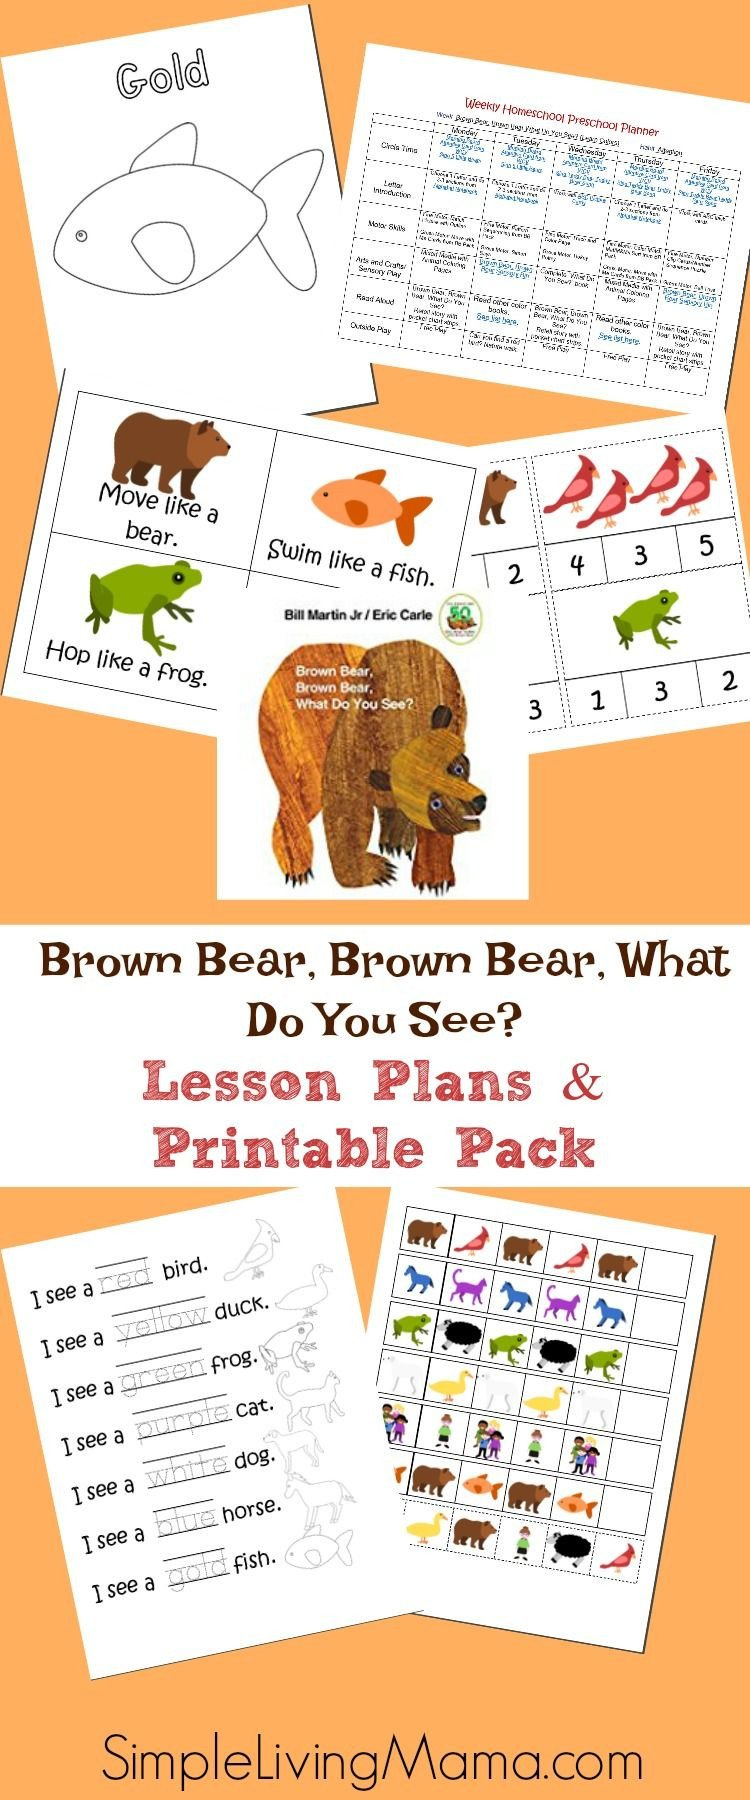 Brown Bear Brown Bear Worksheets Brown Bear Brown Bear What Do You See Preschool Lesson